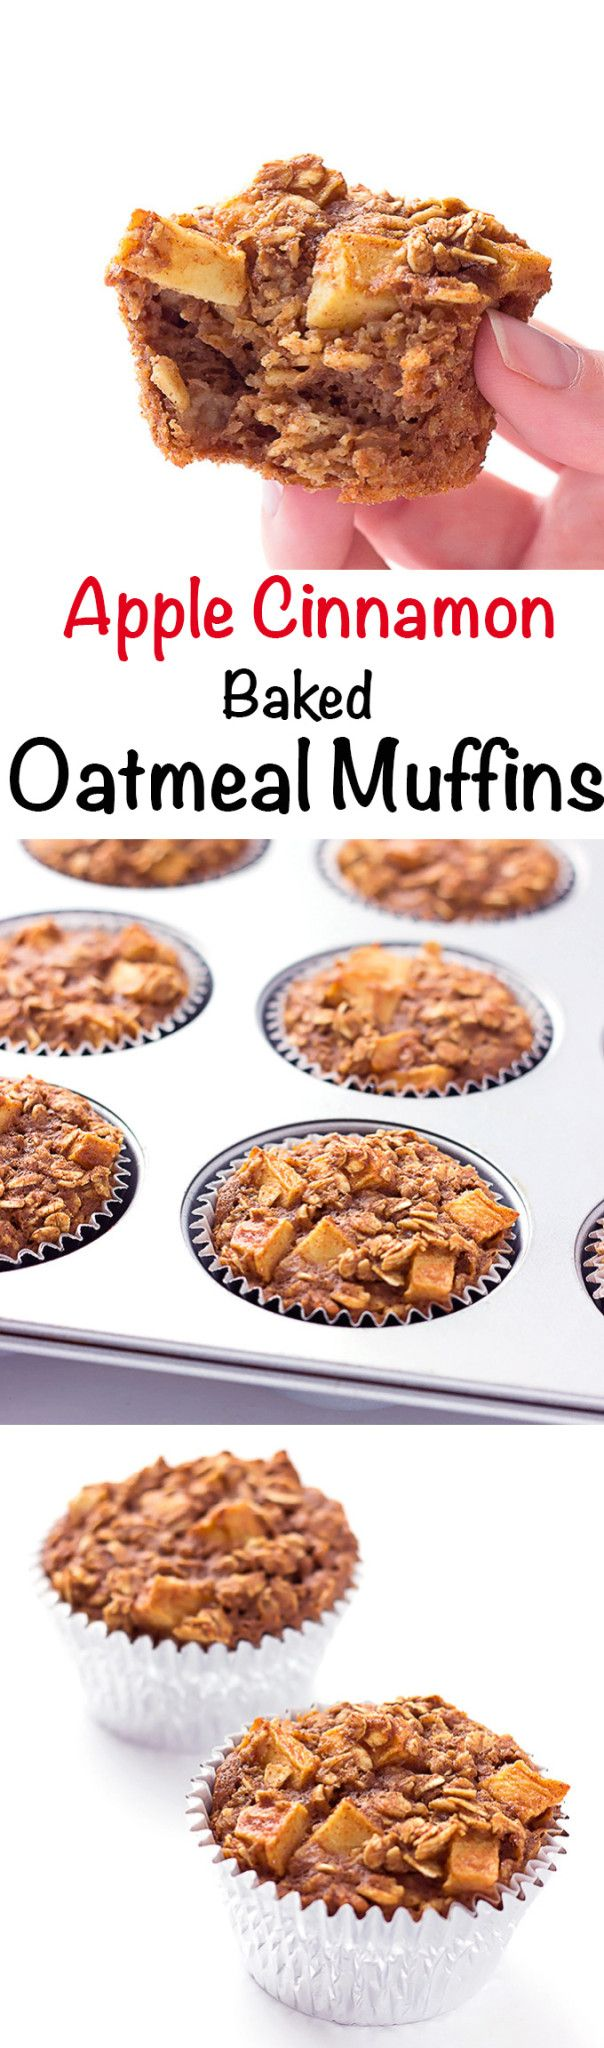 Apple Cinnamon Baked Oatmeal Muffins - Cinnamon apple to-go baked oatmeal cups.   A perfect make ahead breakfast and grab and go breakfast!